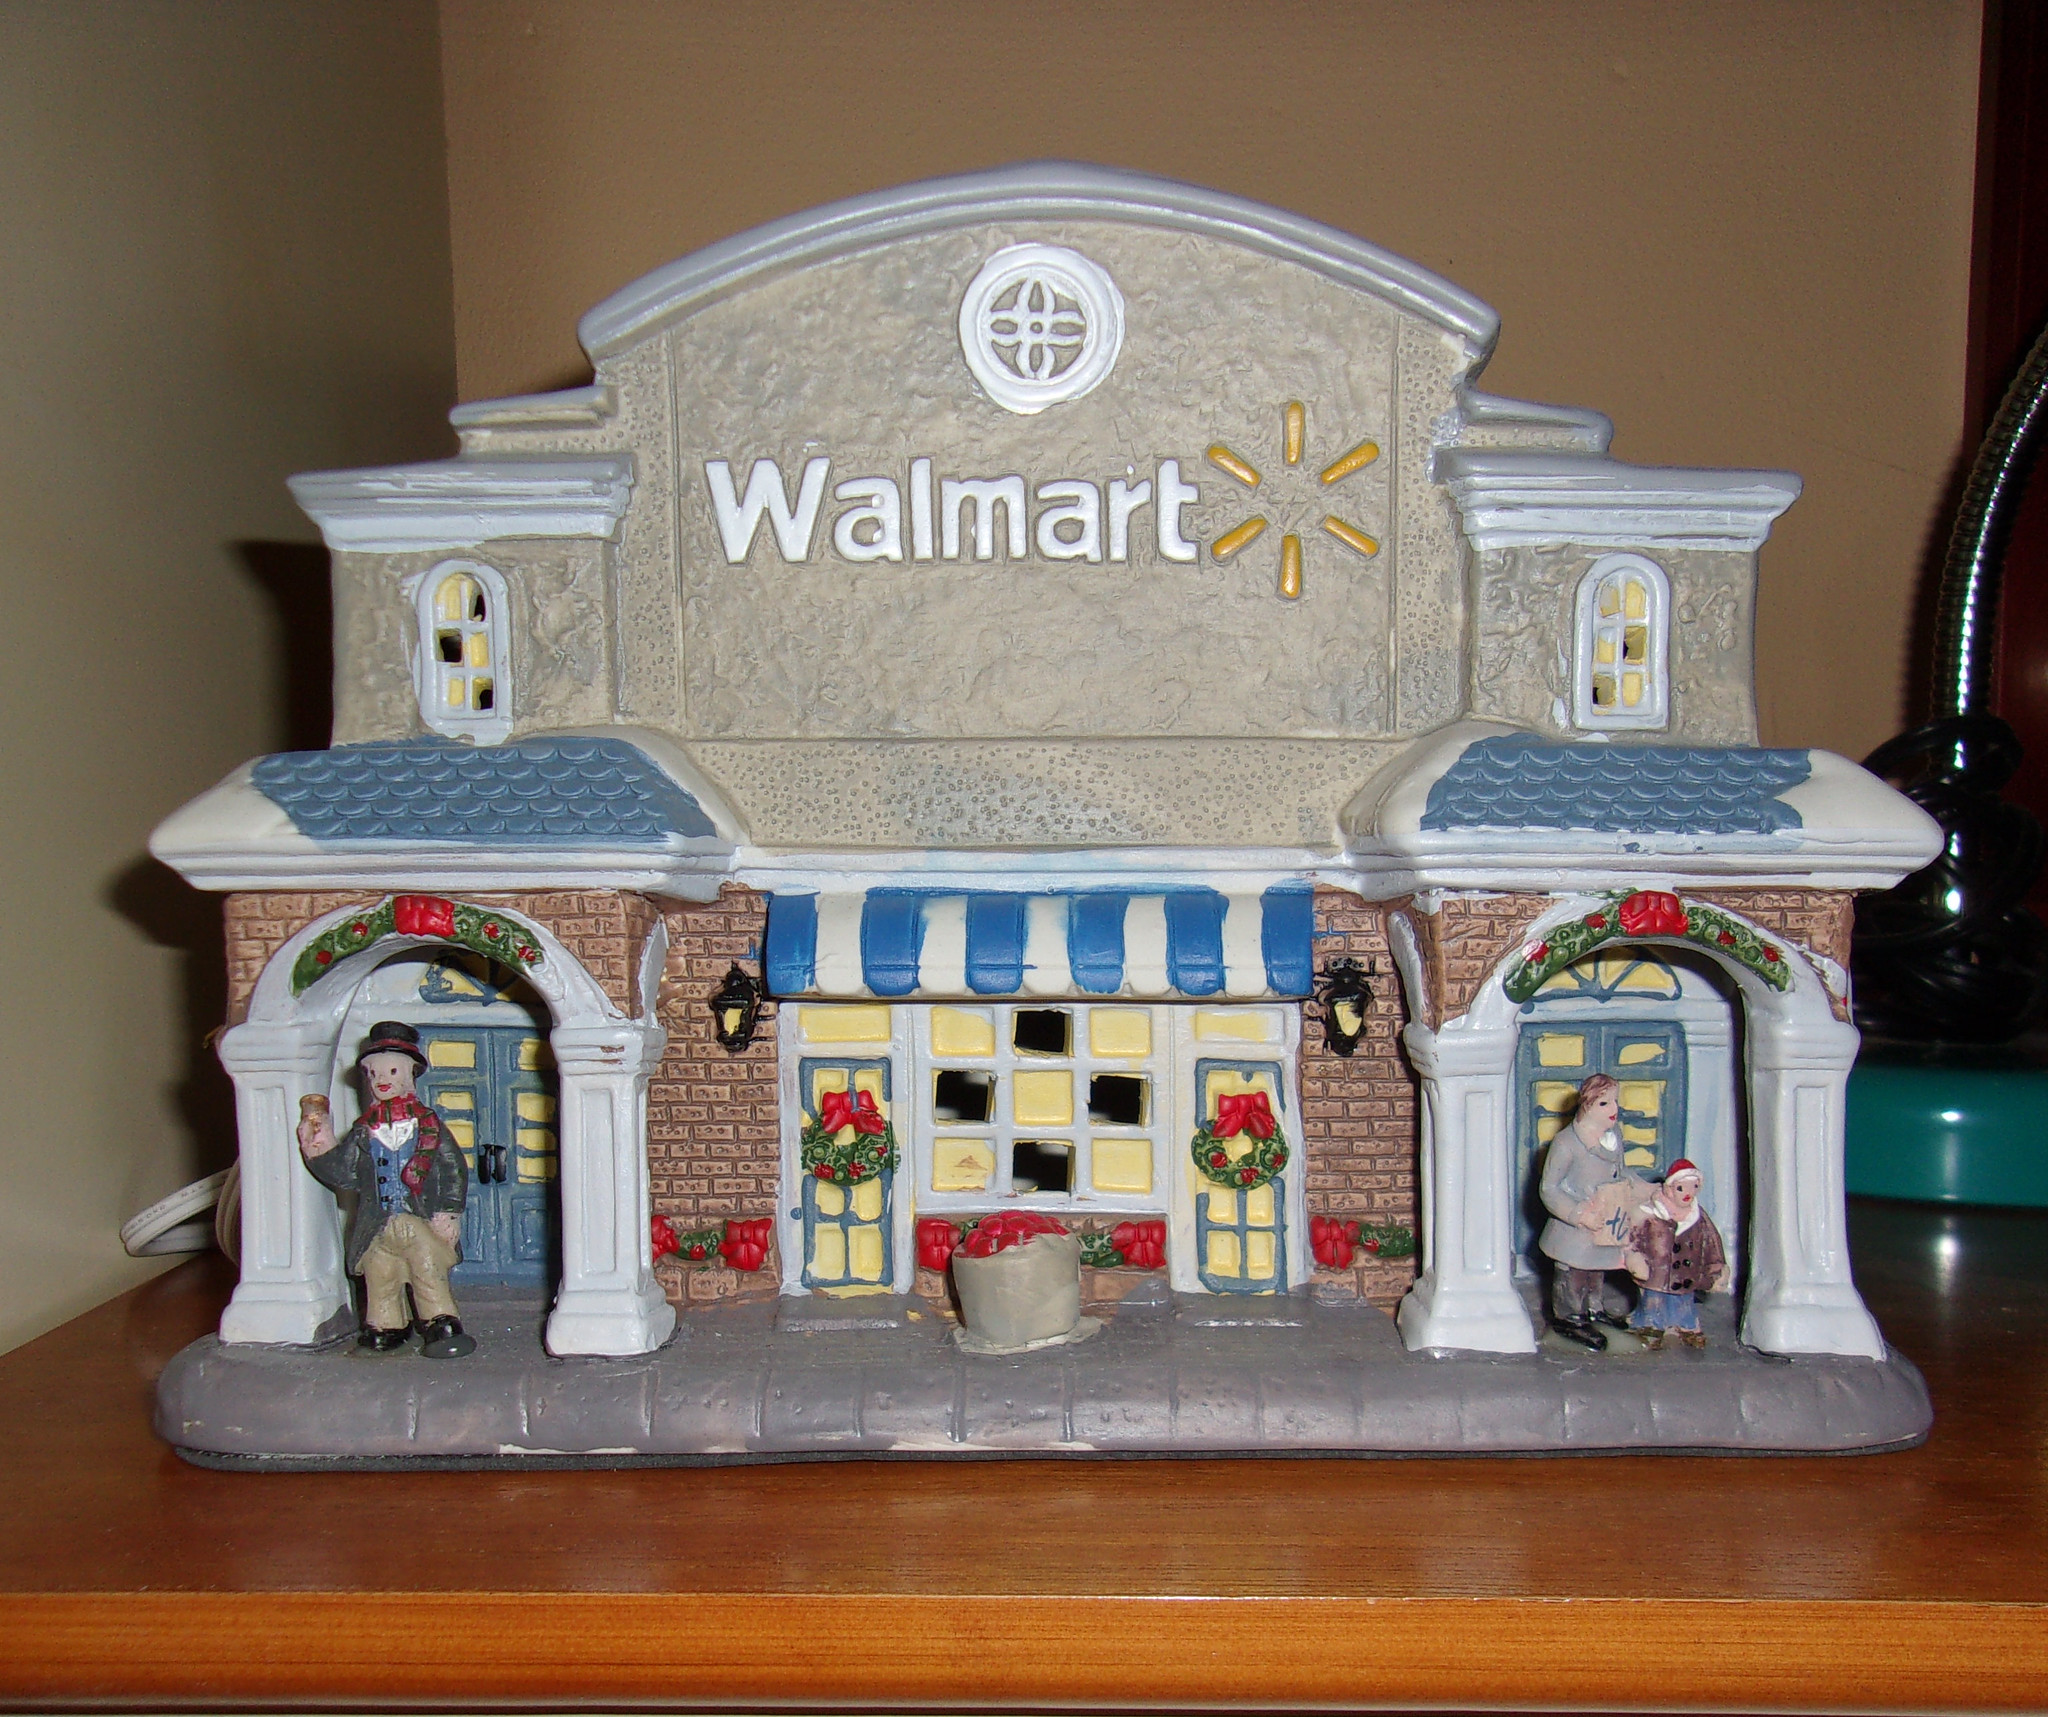 image of ceramic toy walmart